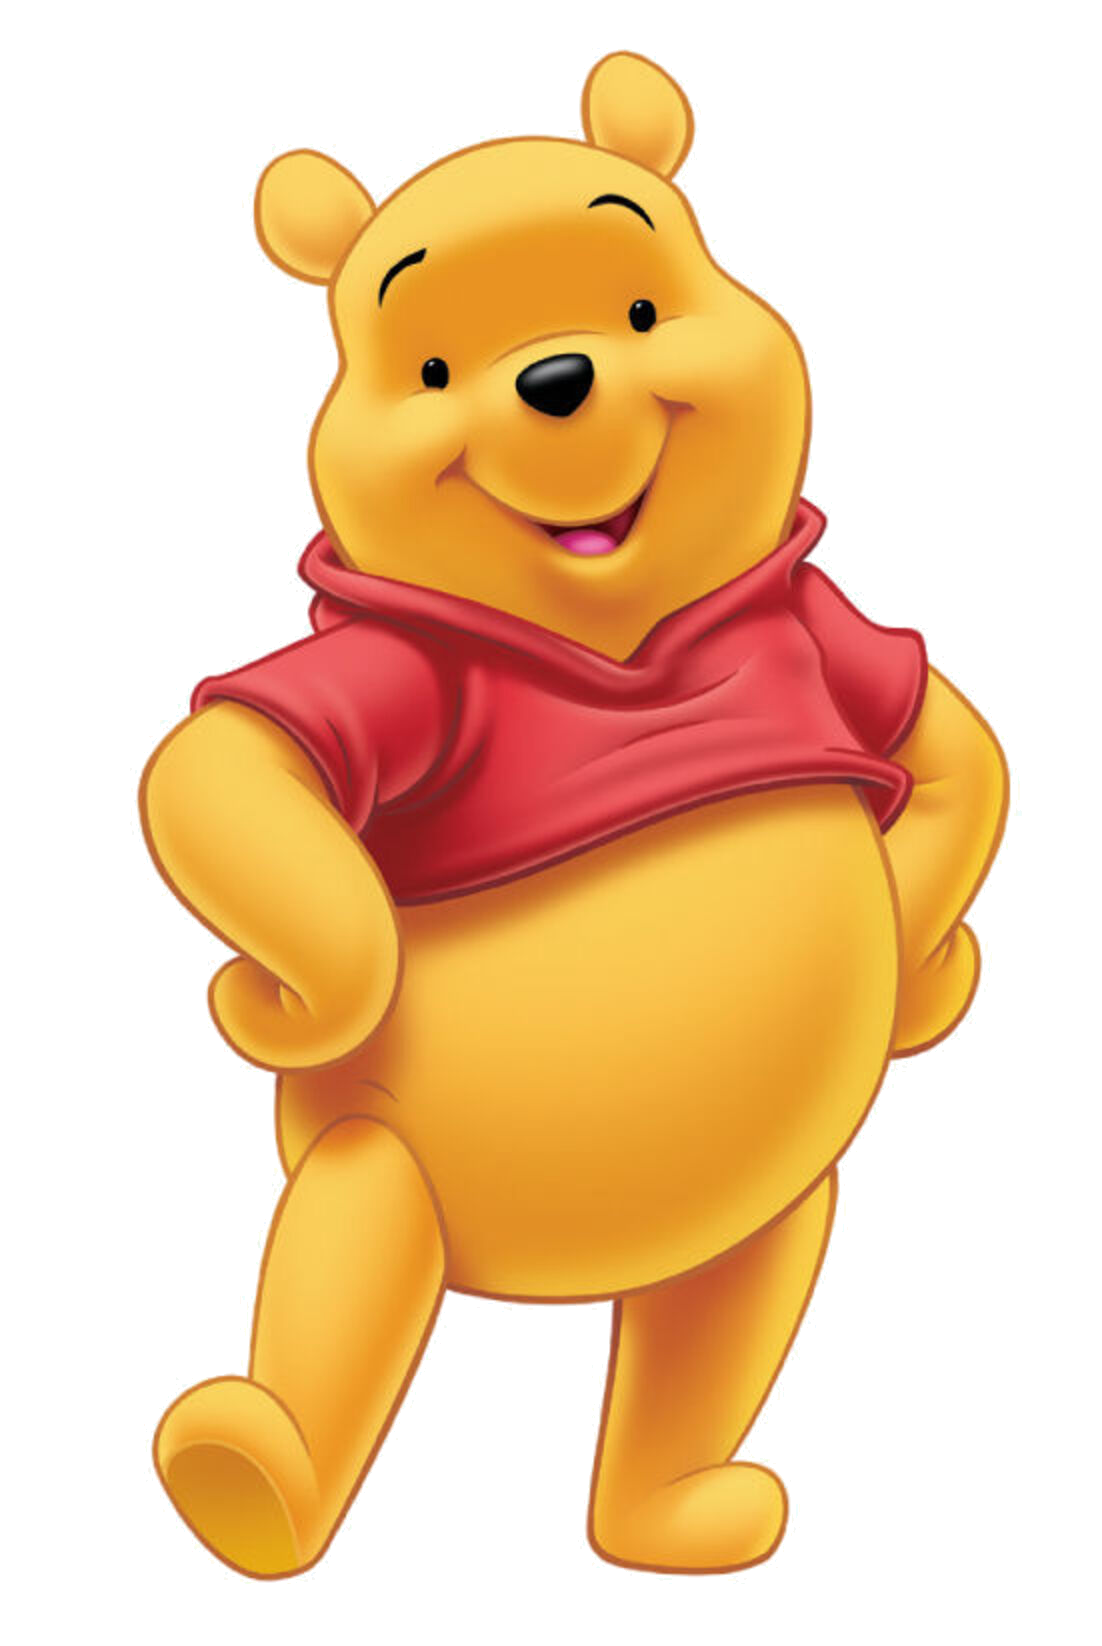 Winnie the Pooh (character)/Gallery